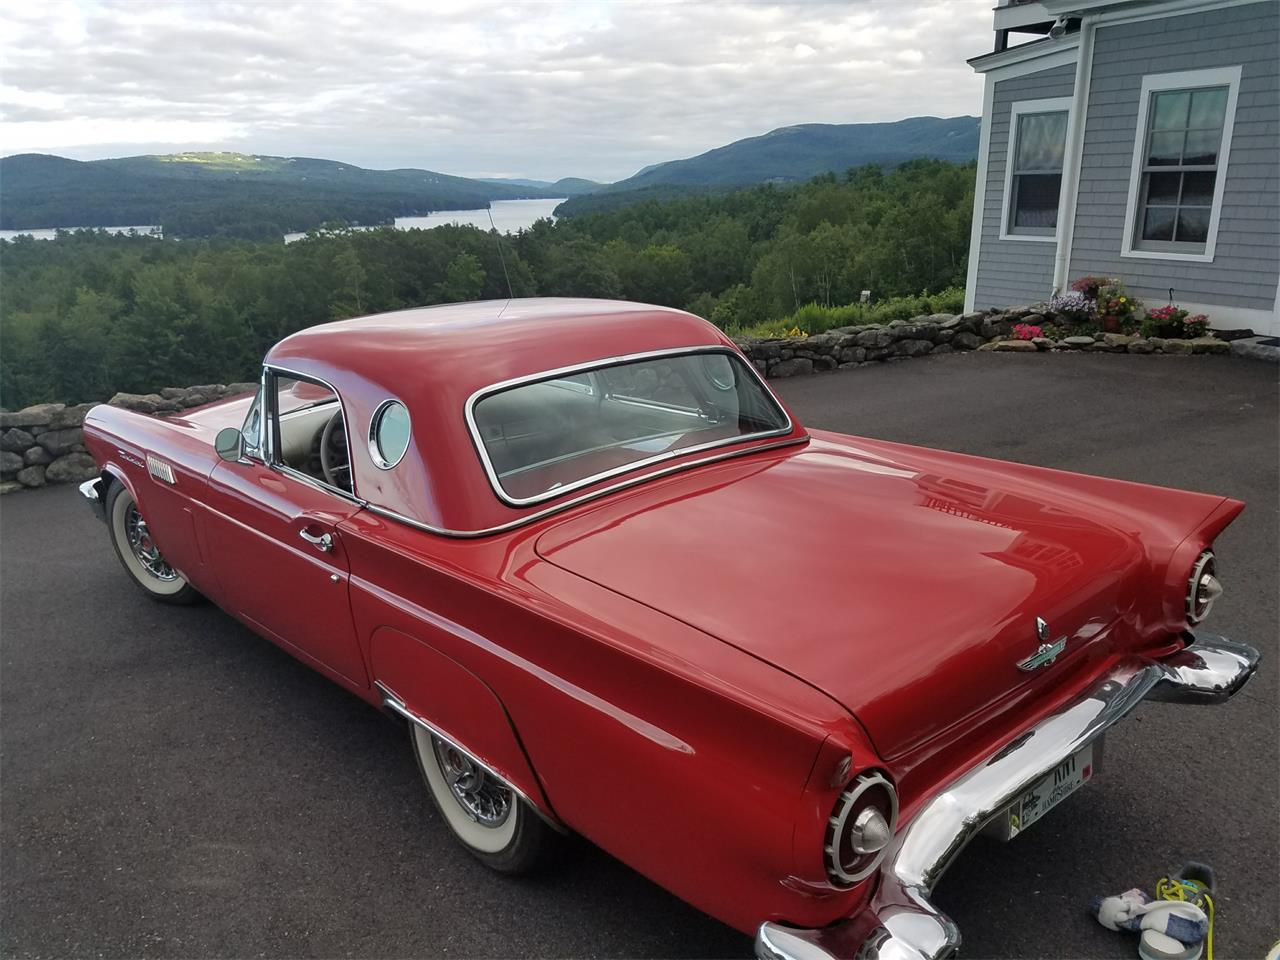 Large Picture of 1957 Ford Thunderbird - $32,900.00 - LI8K